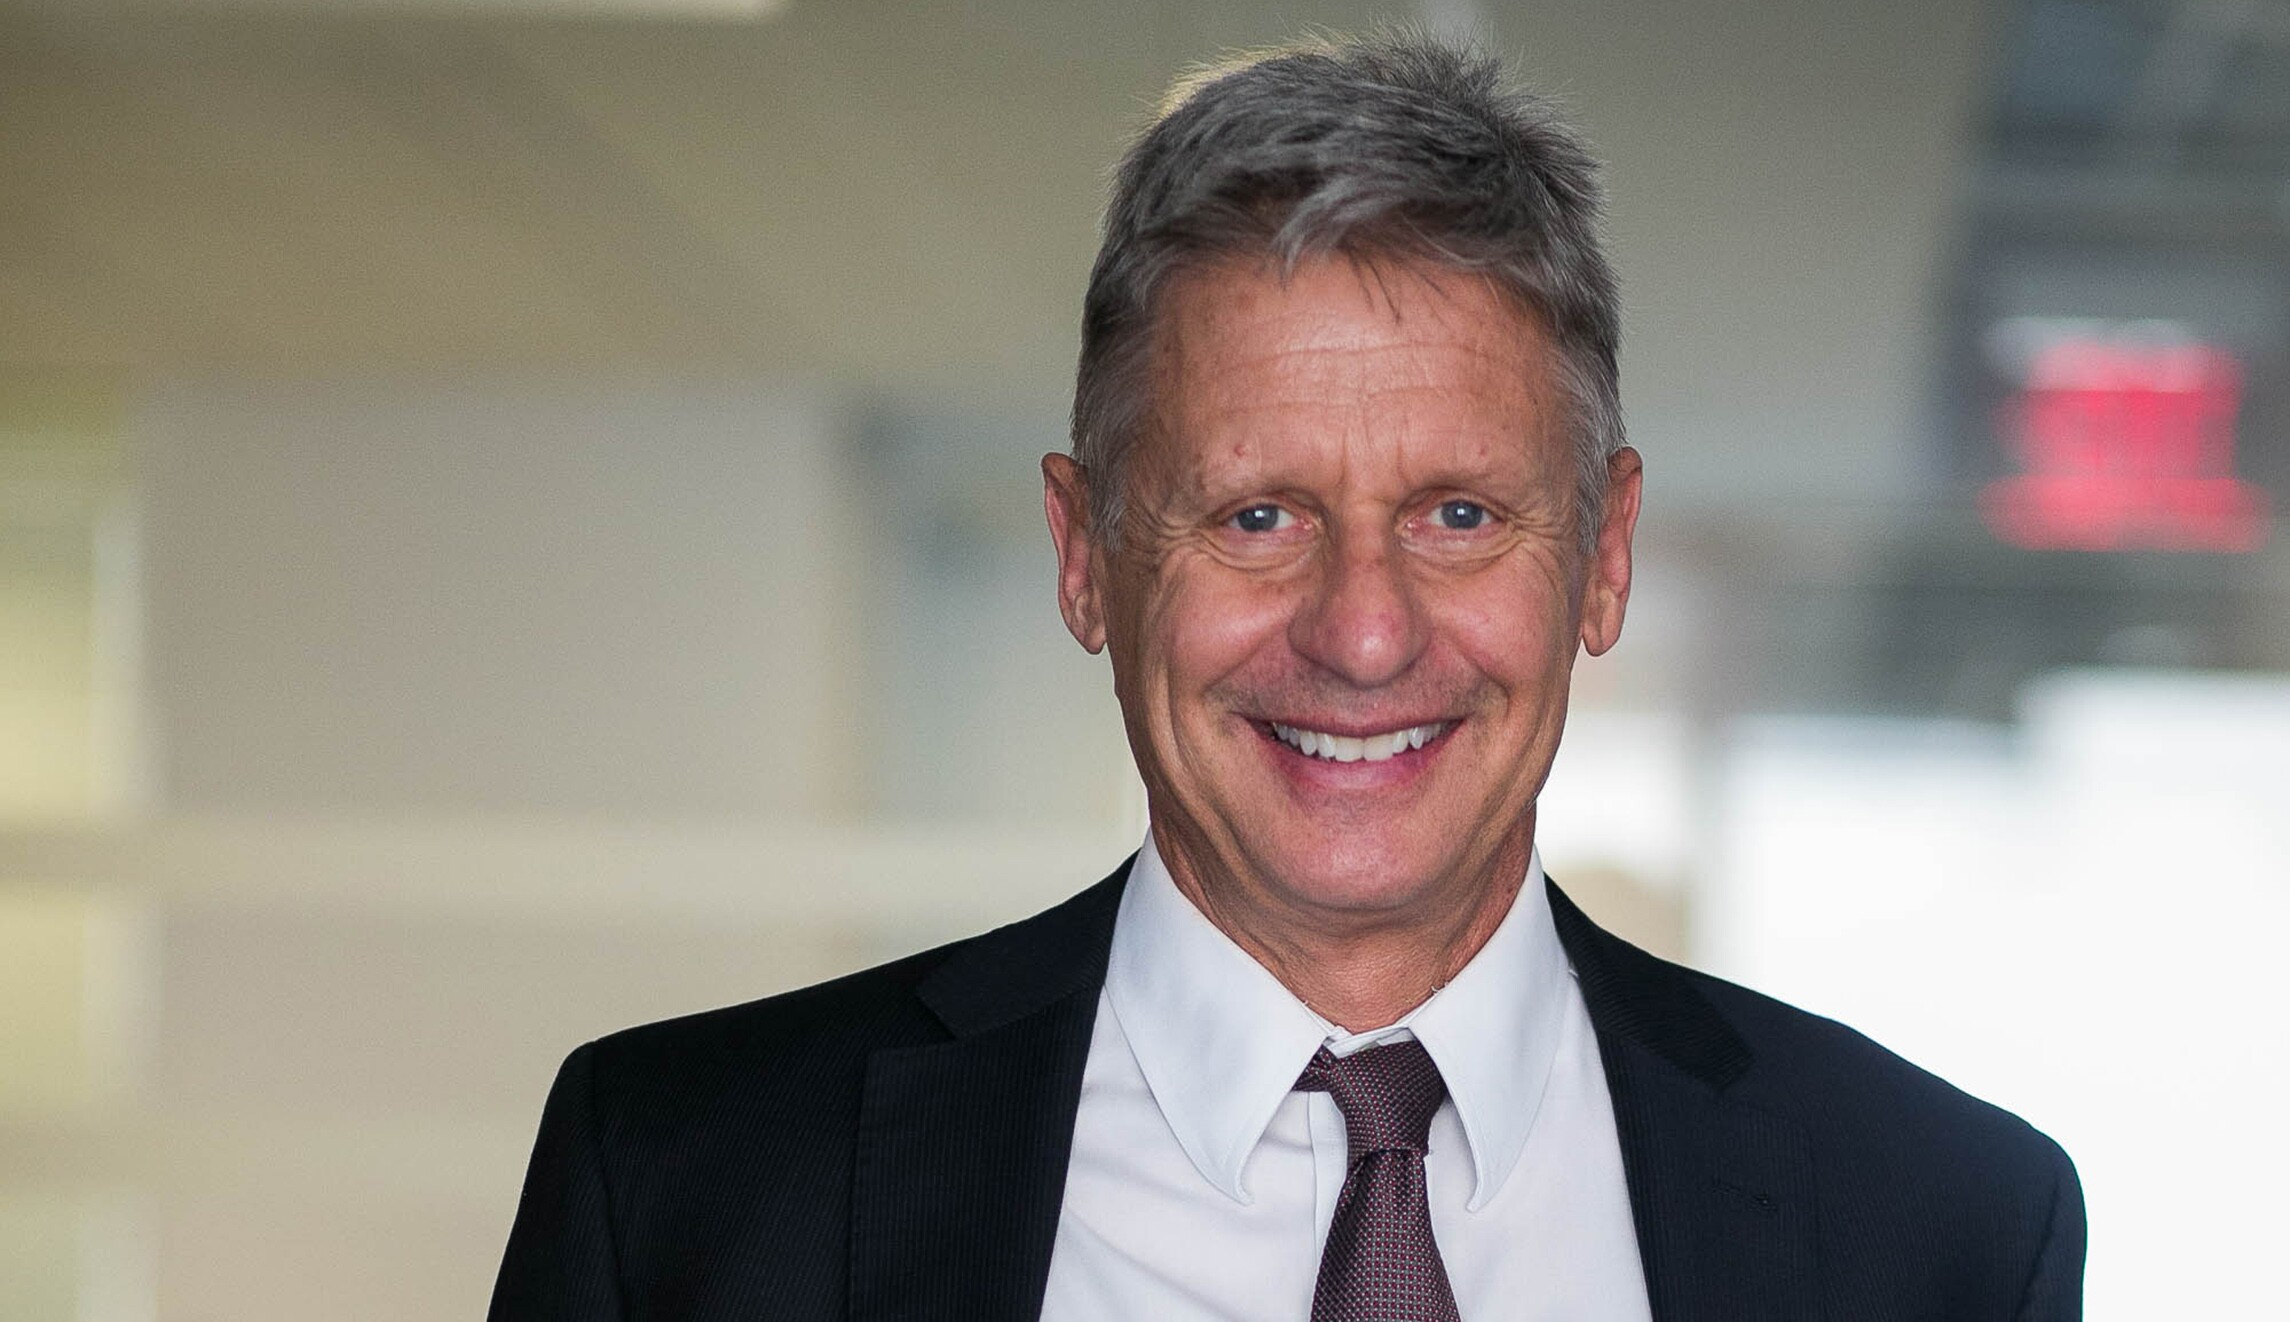 The 65-year old son of father (?) and mother(?) Gary Johnson in 2018 photo. Gary Johnson earned a  million dollar salary - leaving the net worth at  million in 2018